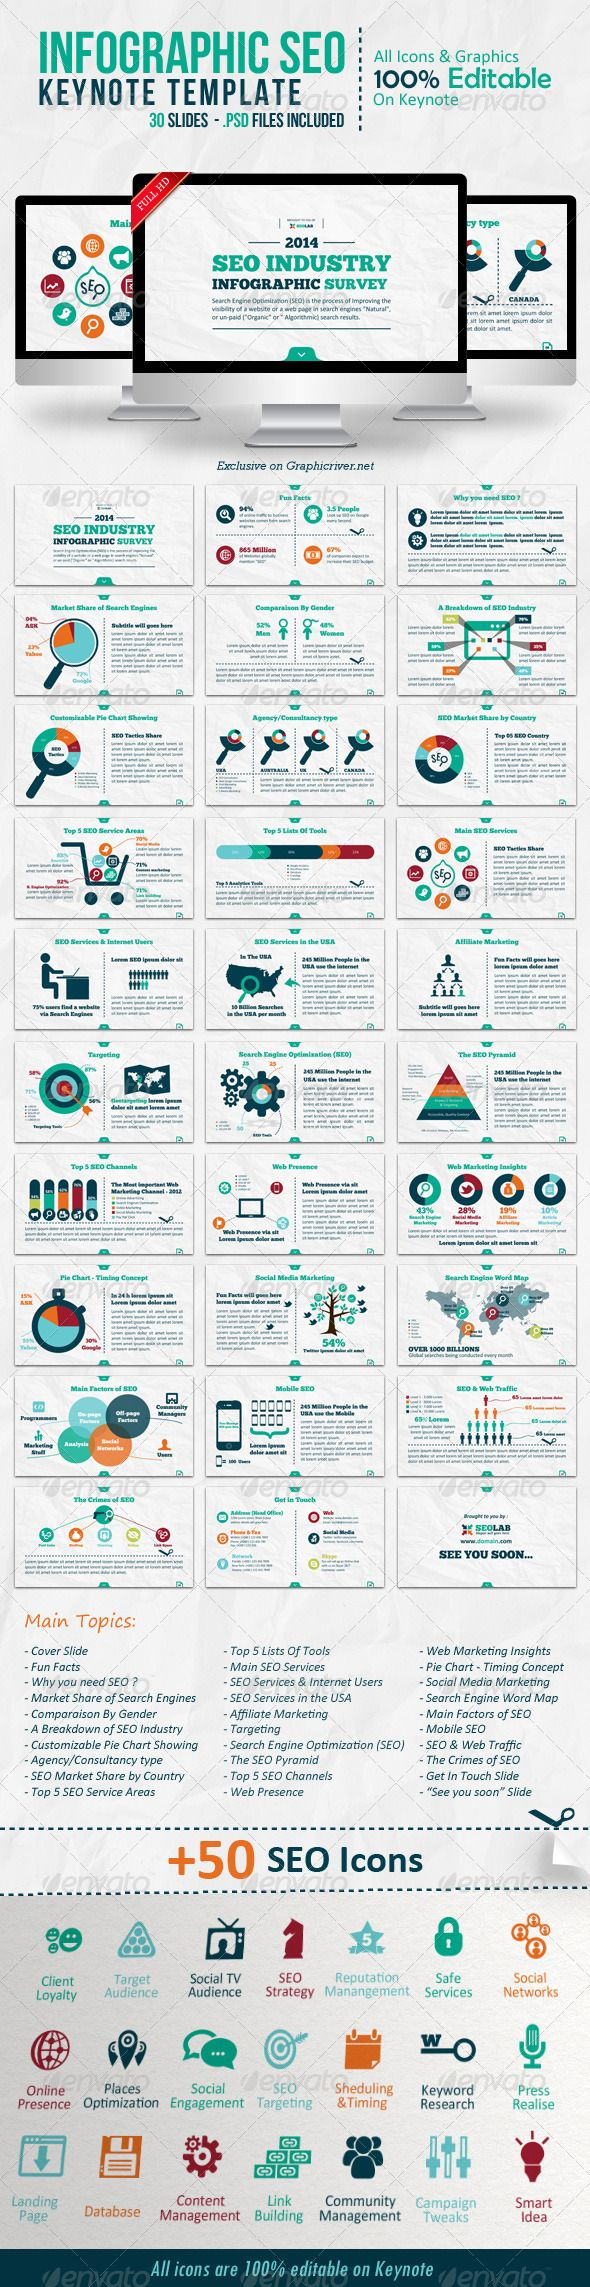 Infographic SEO Keynote Template | Keynote theme / template